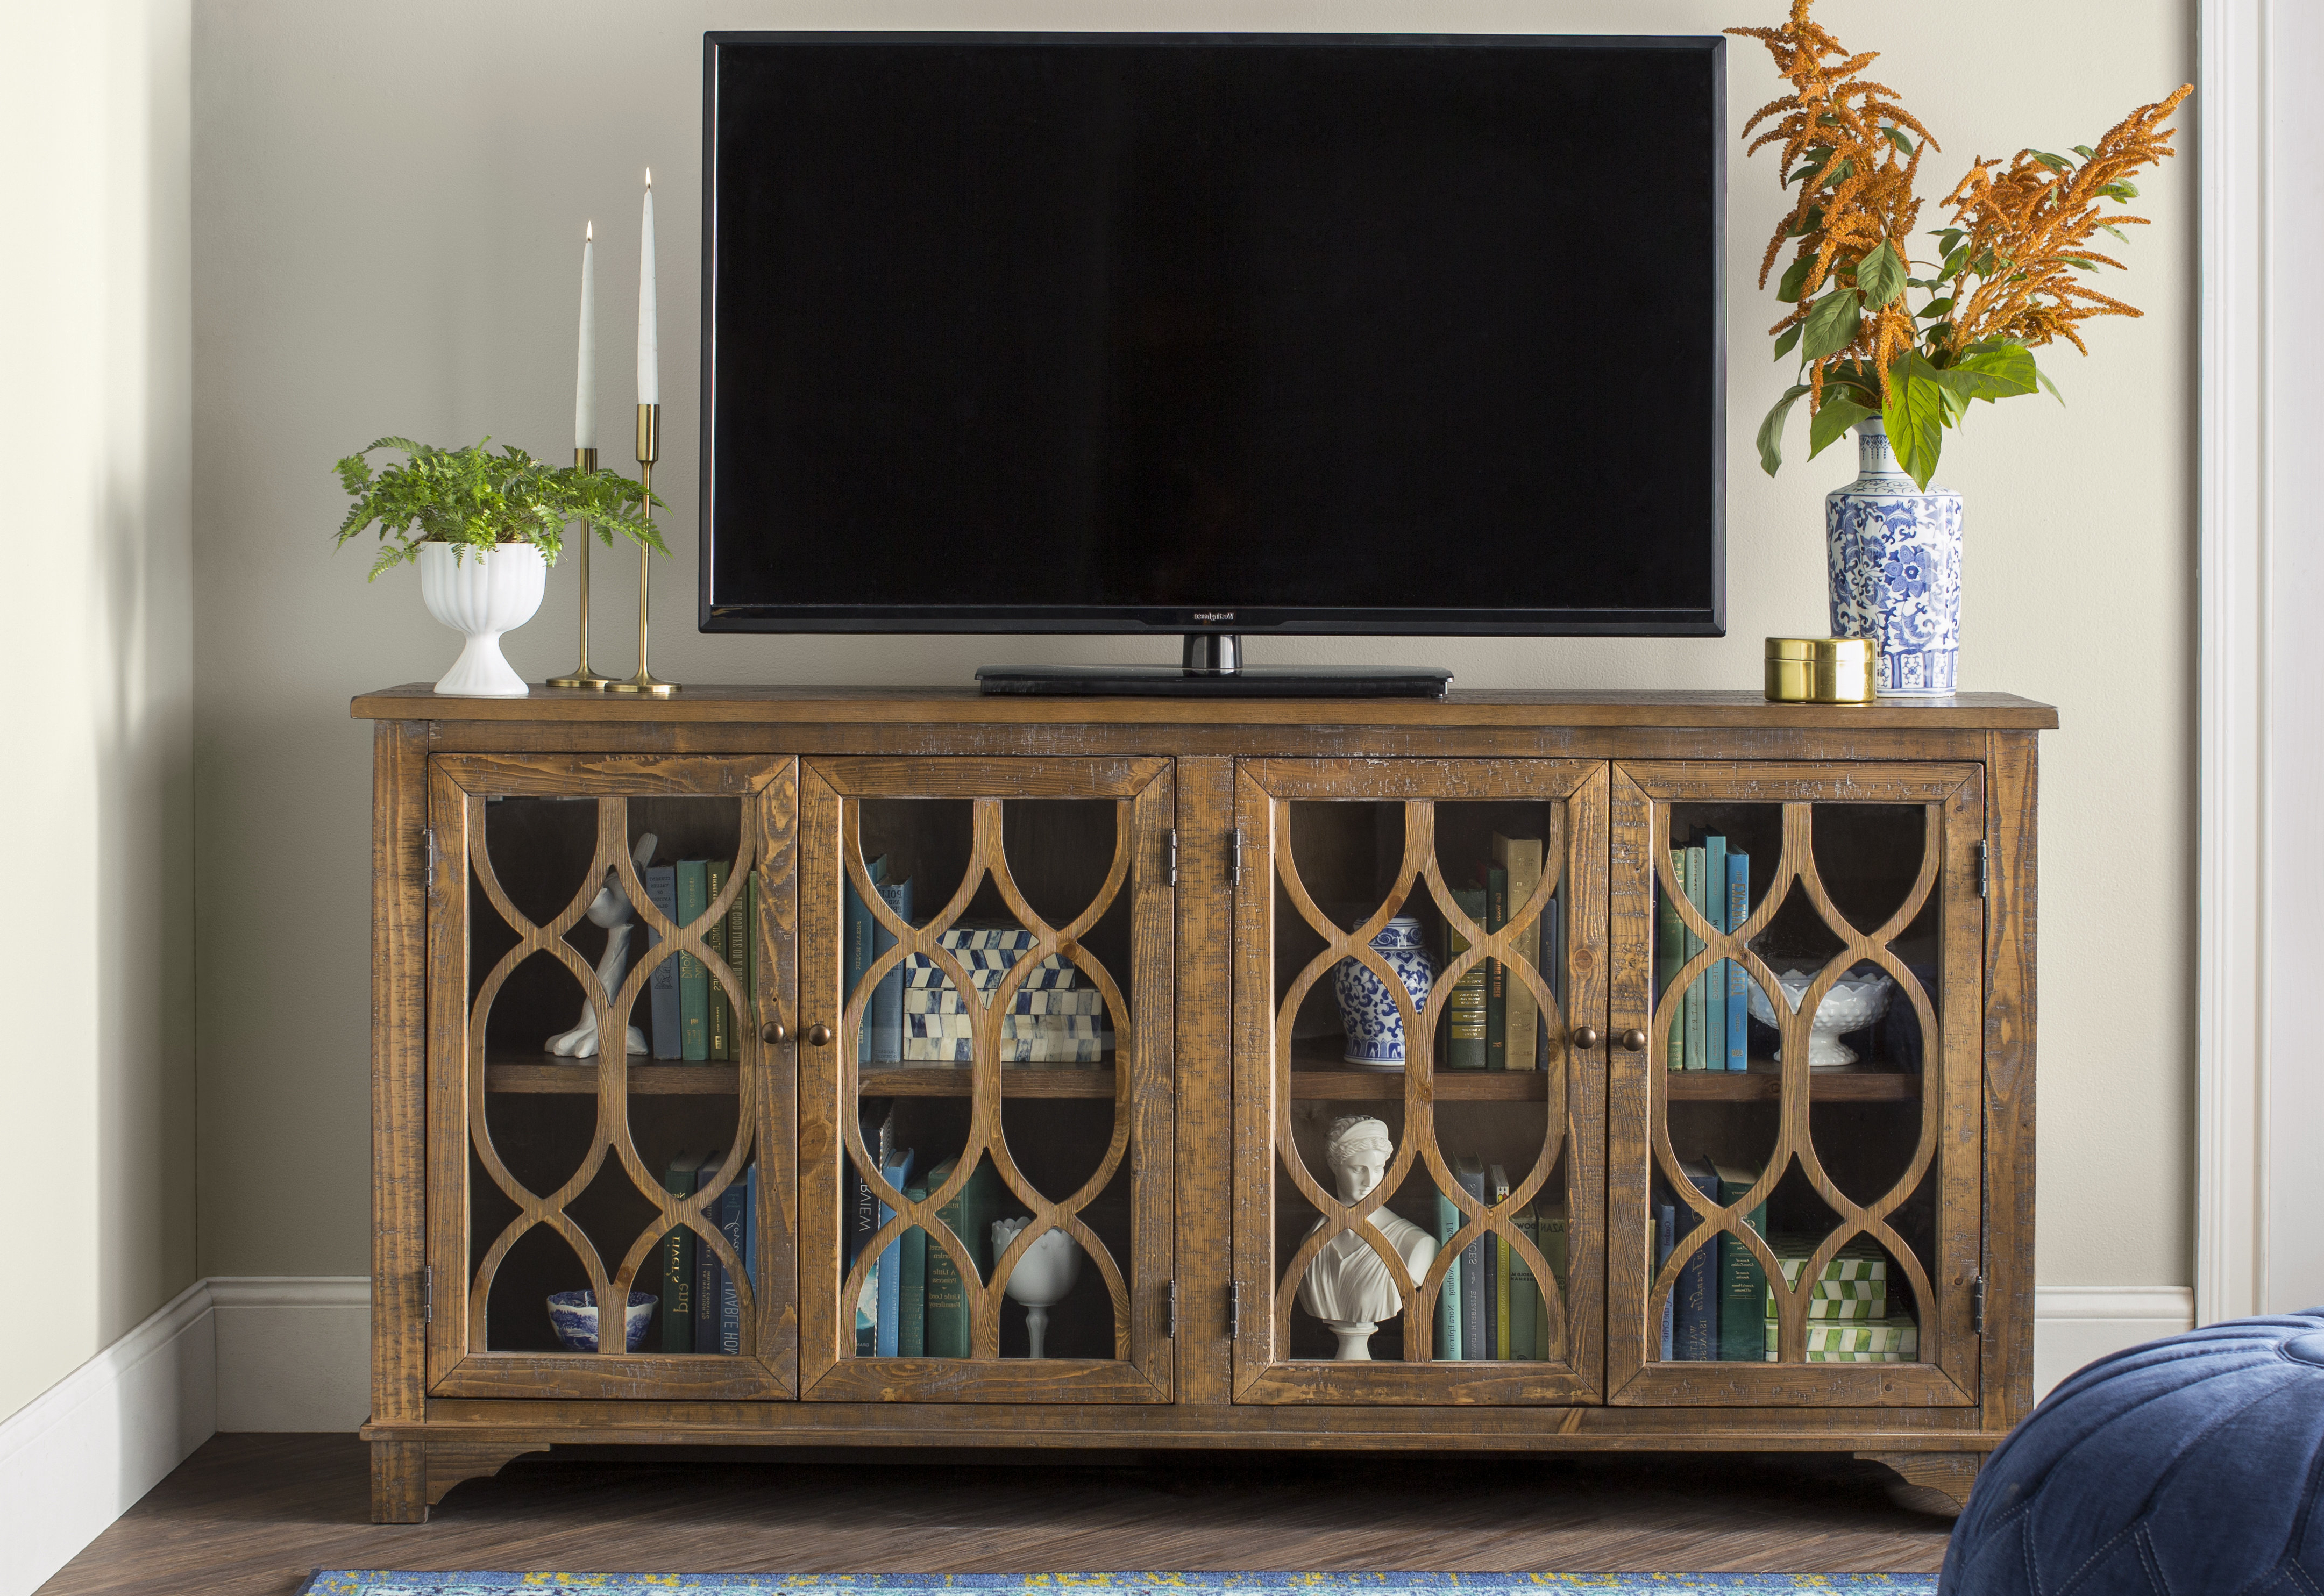 70 Inches And Larger Tv Stands | Joss & Main Intended For Walton 72 Inch Tv Stands (View 3 of 20)